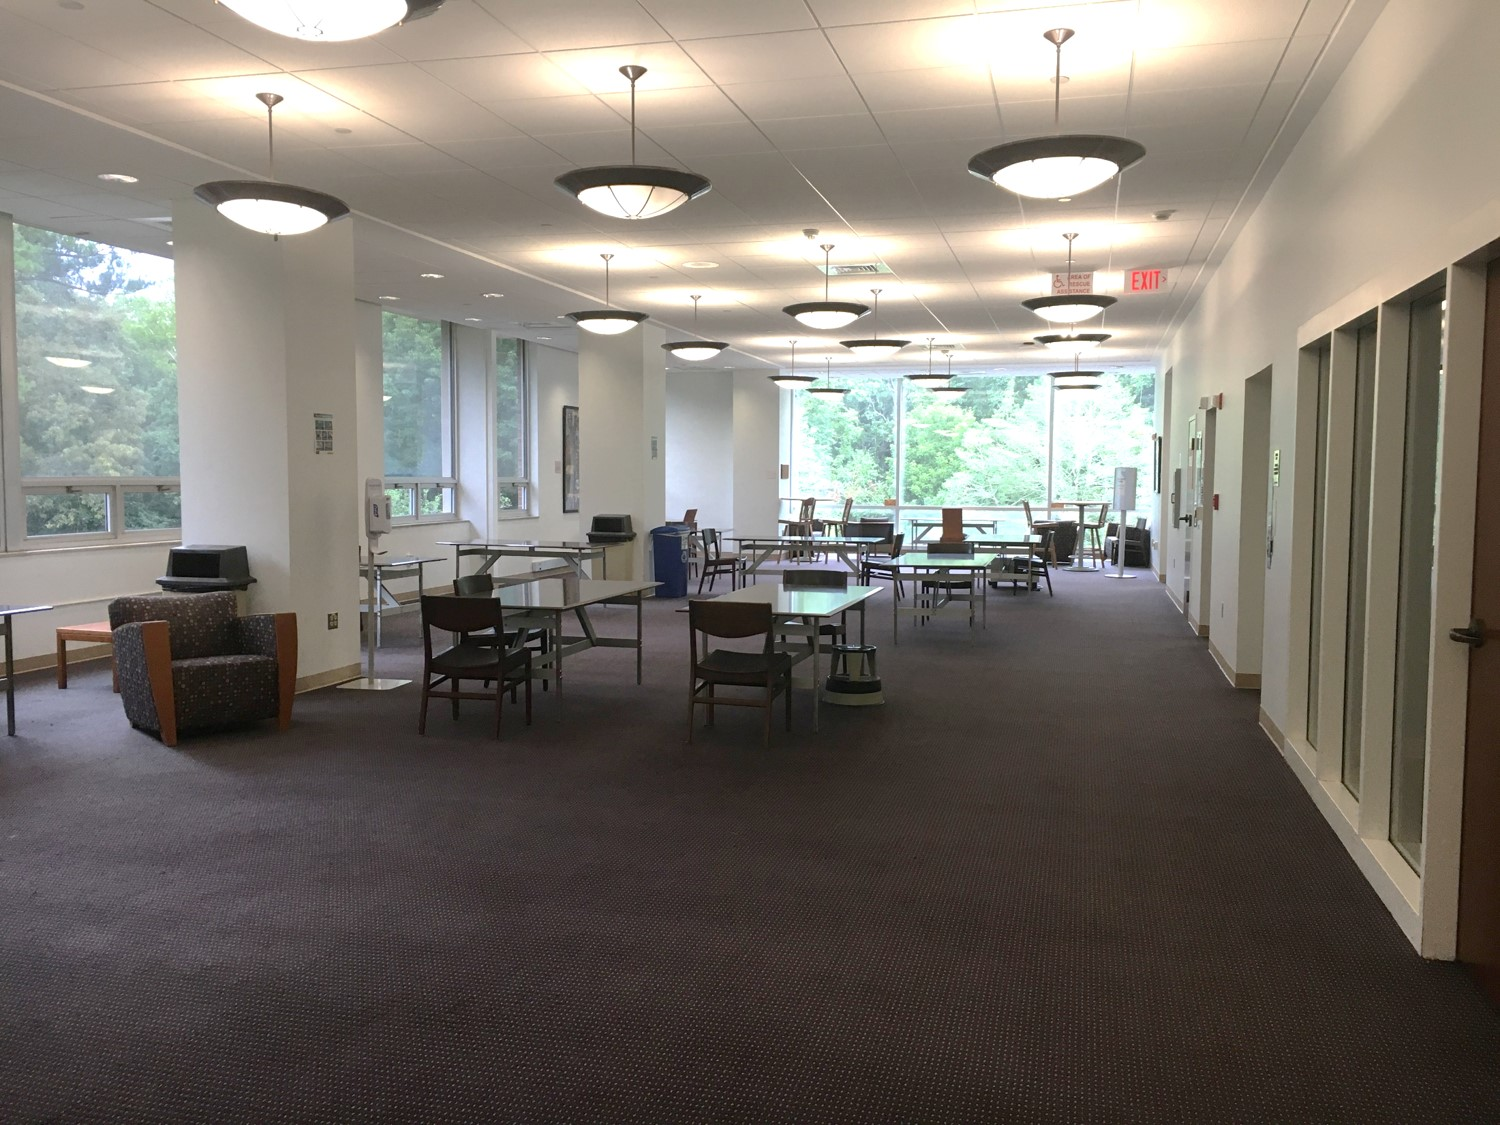 Research Room - Swem Library